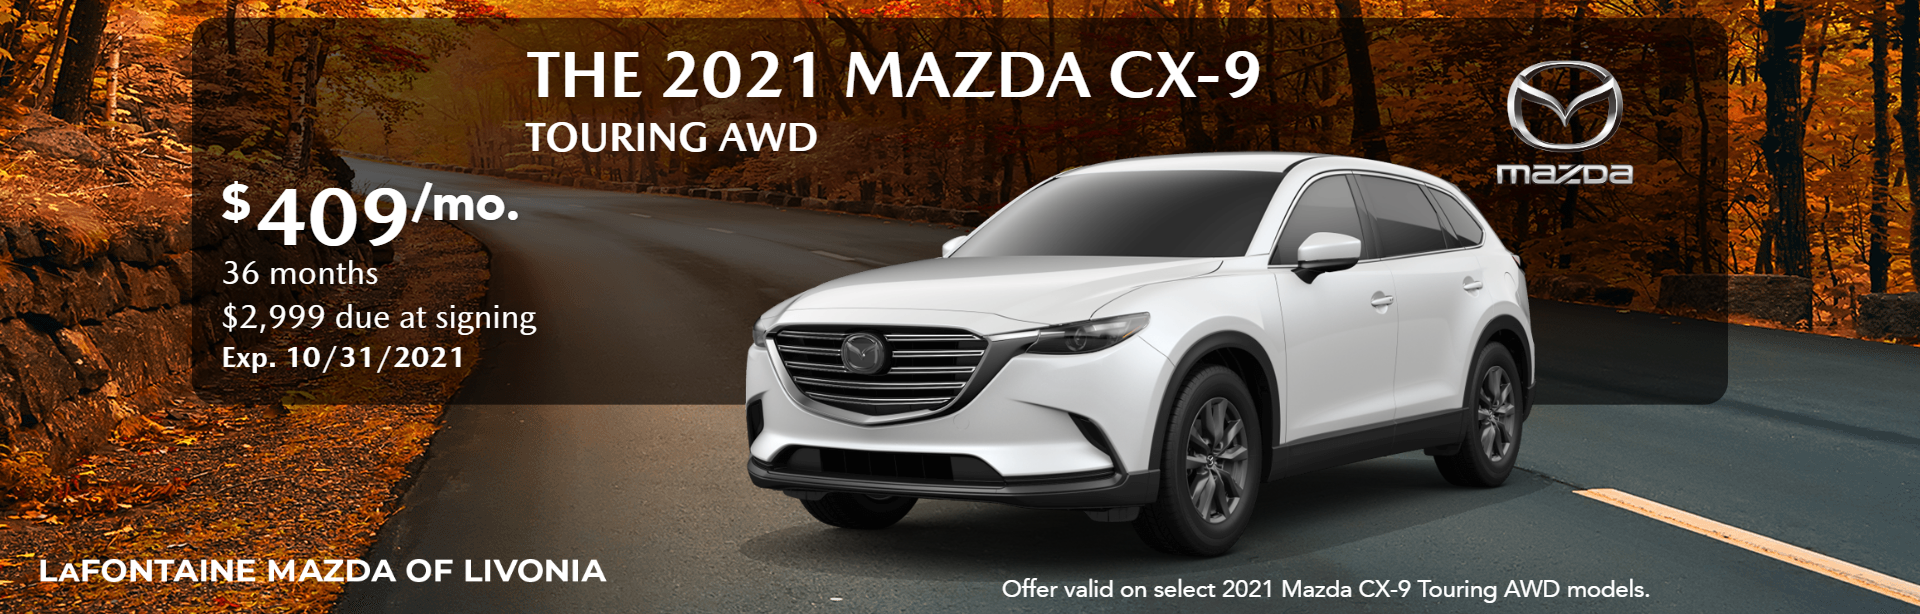 2021_Mazda_CX-9_Touring AWD_Website Lease Banner